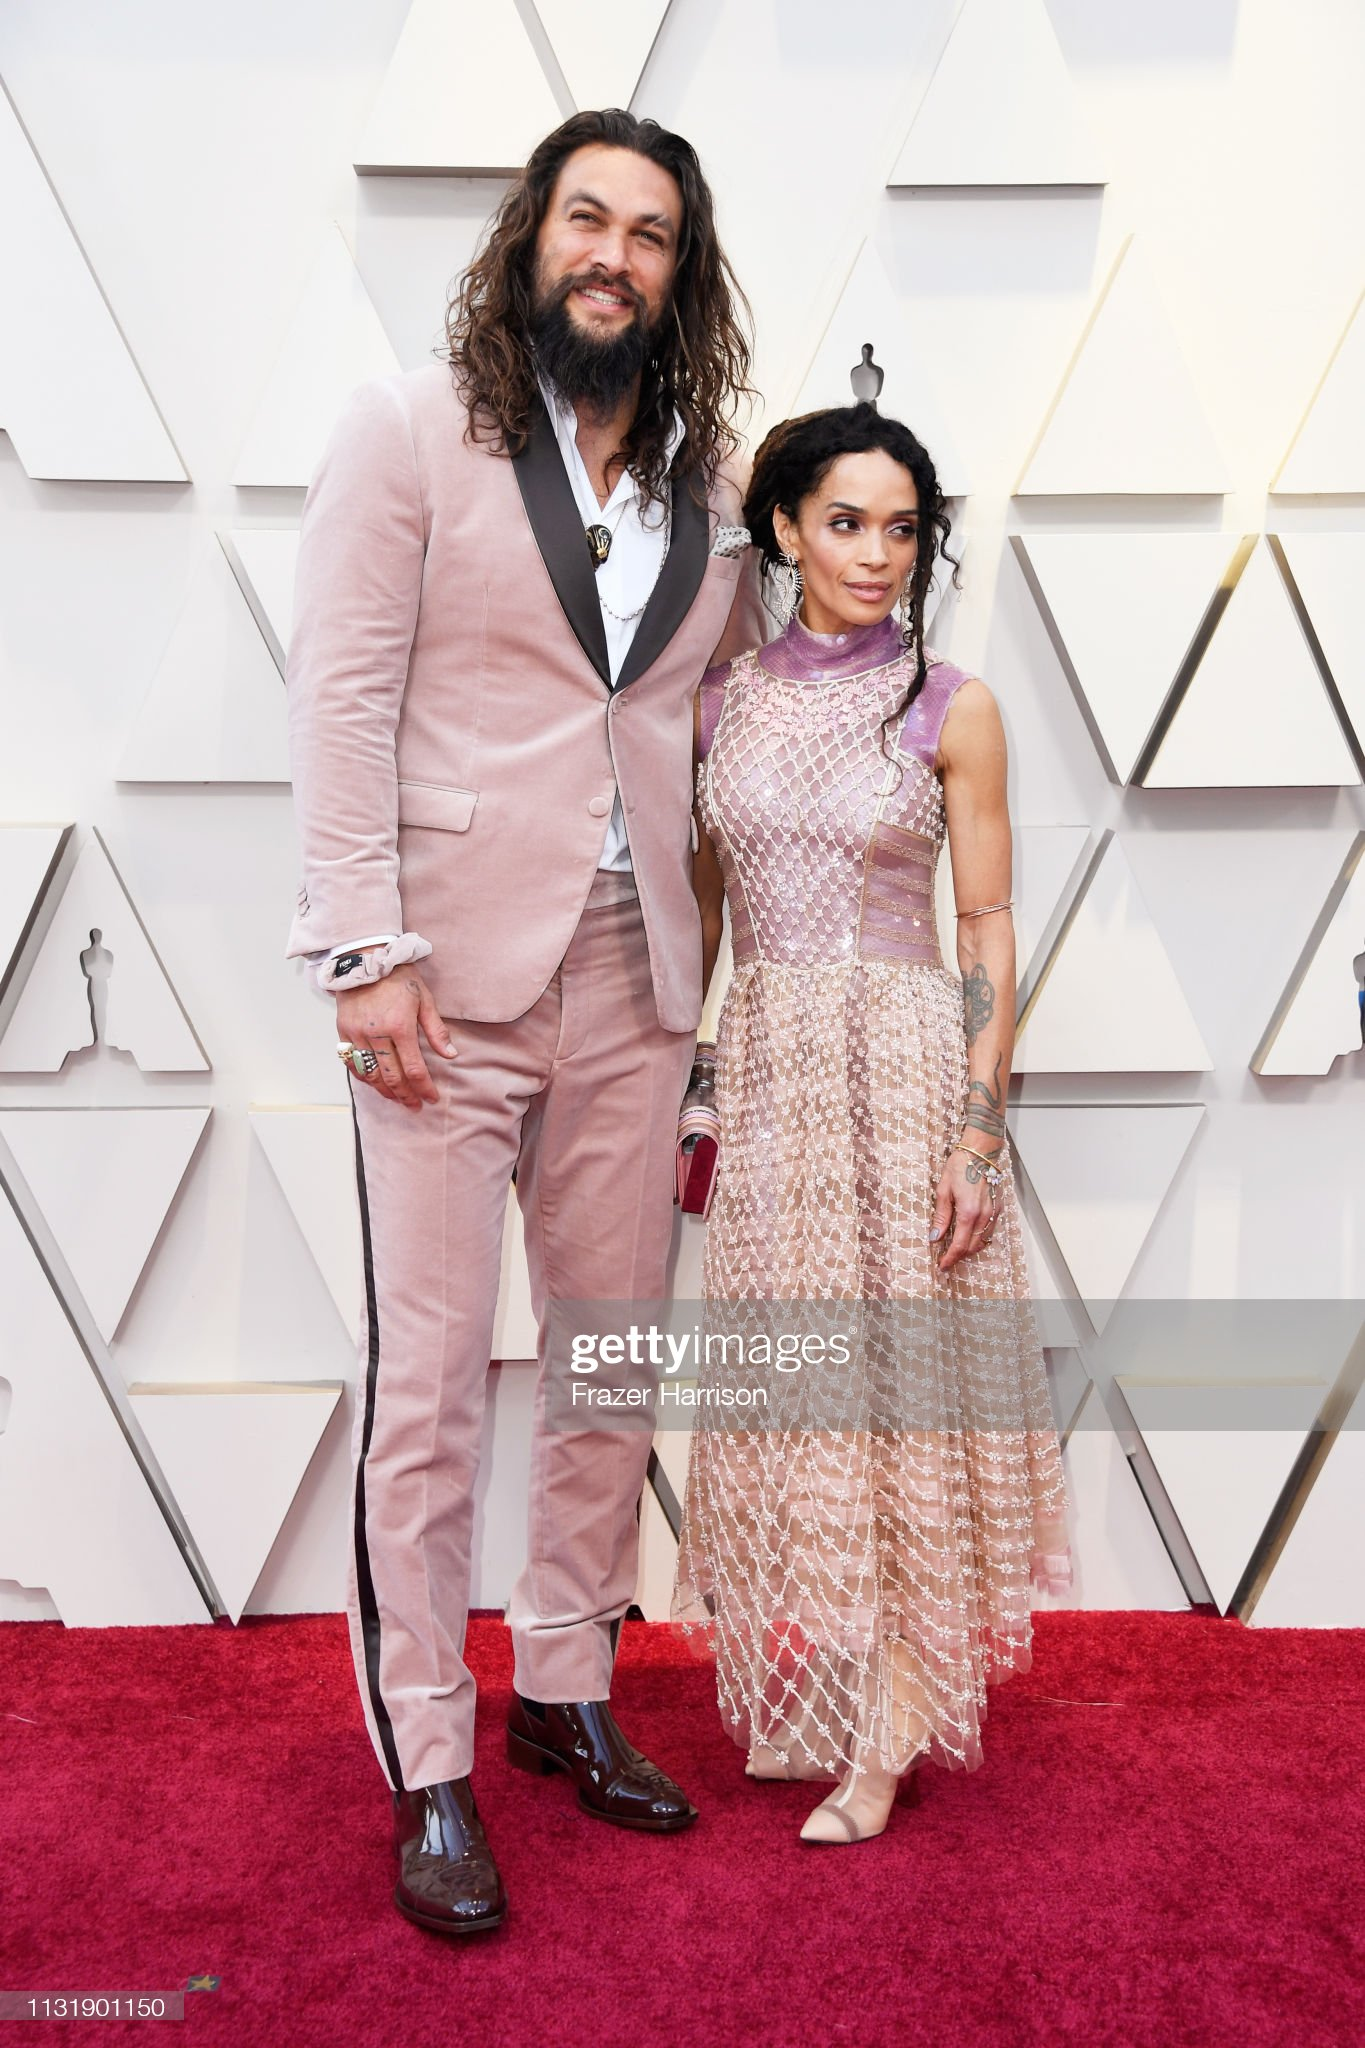 ¿Cuánto mide Jason Momoa? - Altura - Real height Jason-momoa-and-lisa-bonet-attend-the-91st-annual-academy-awards-at-picture-id1131901150?s=2048x2048